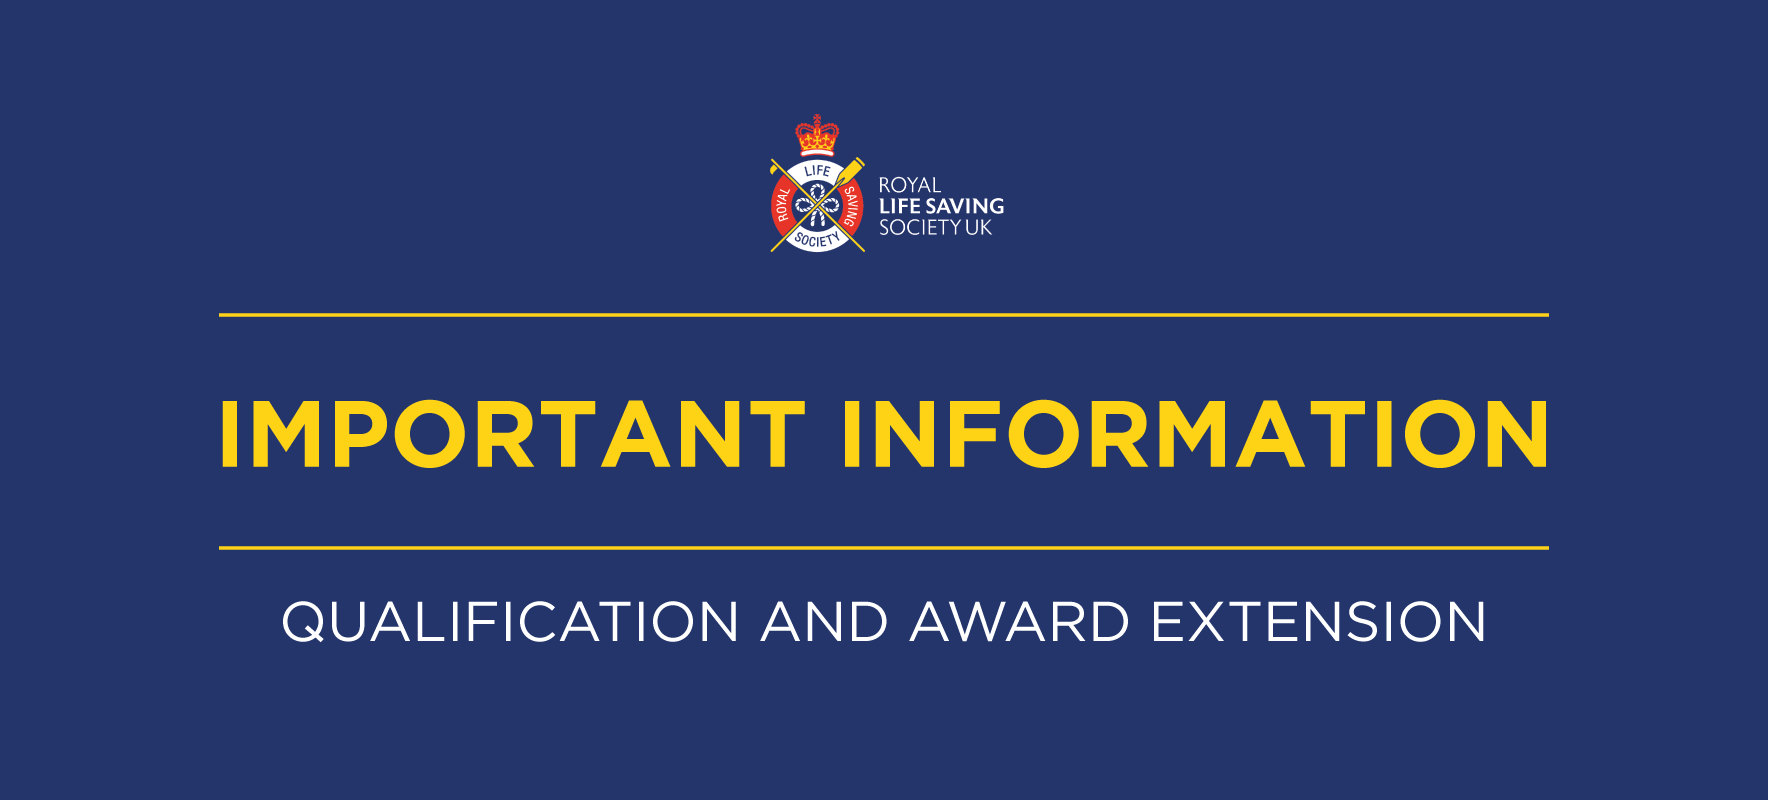 Information about qualification expiry dates